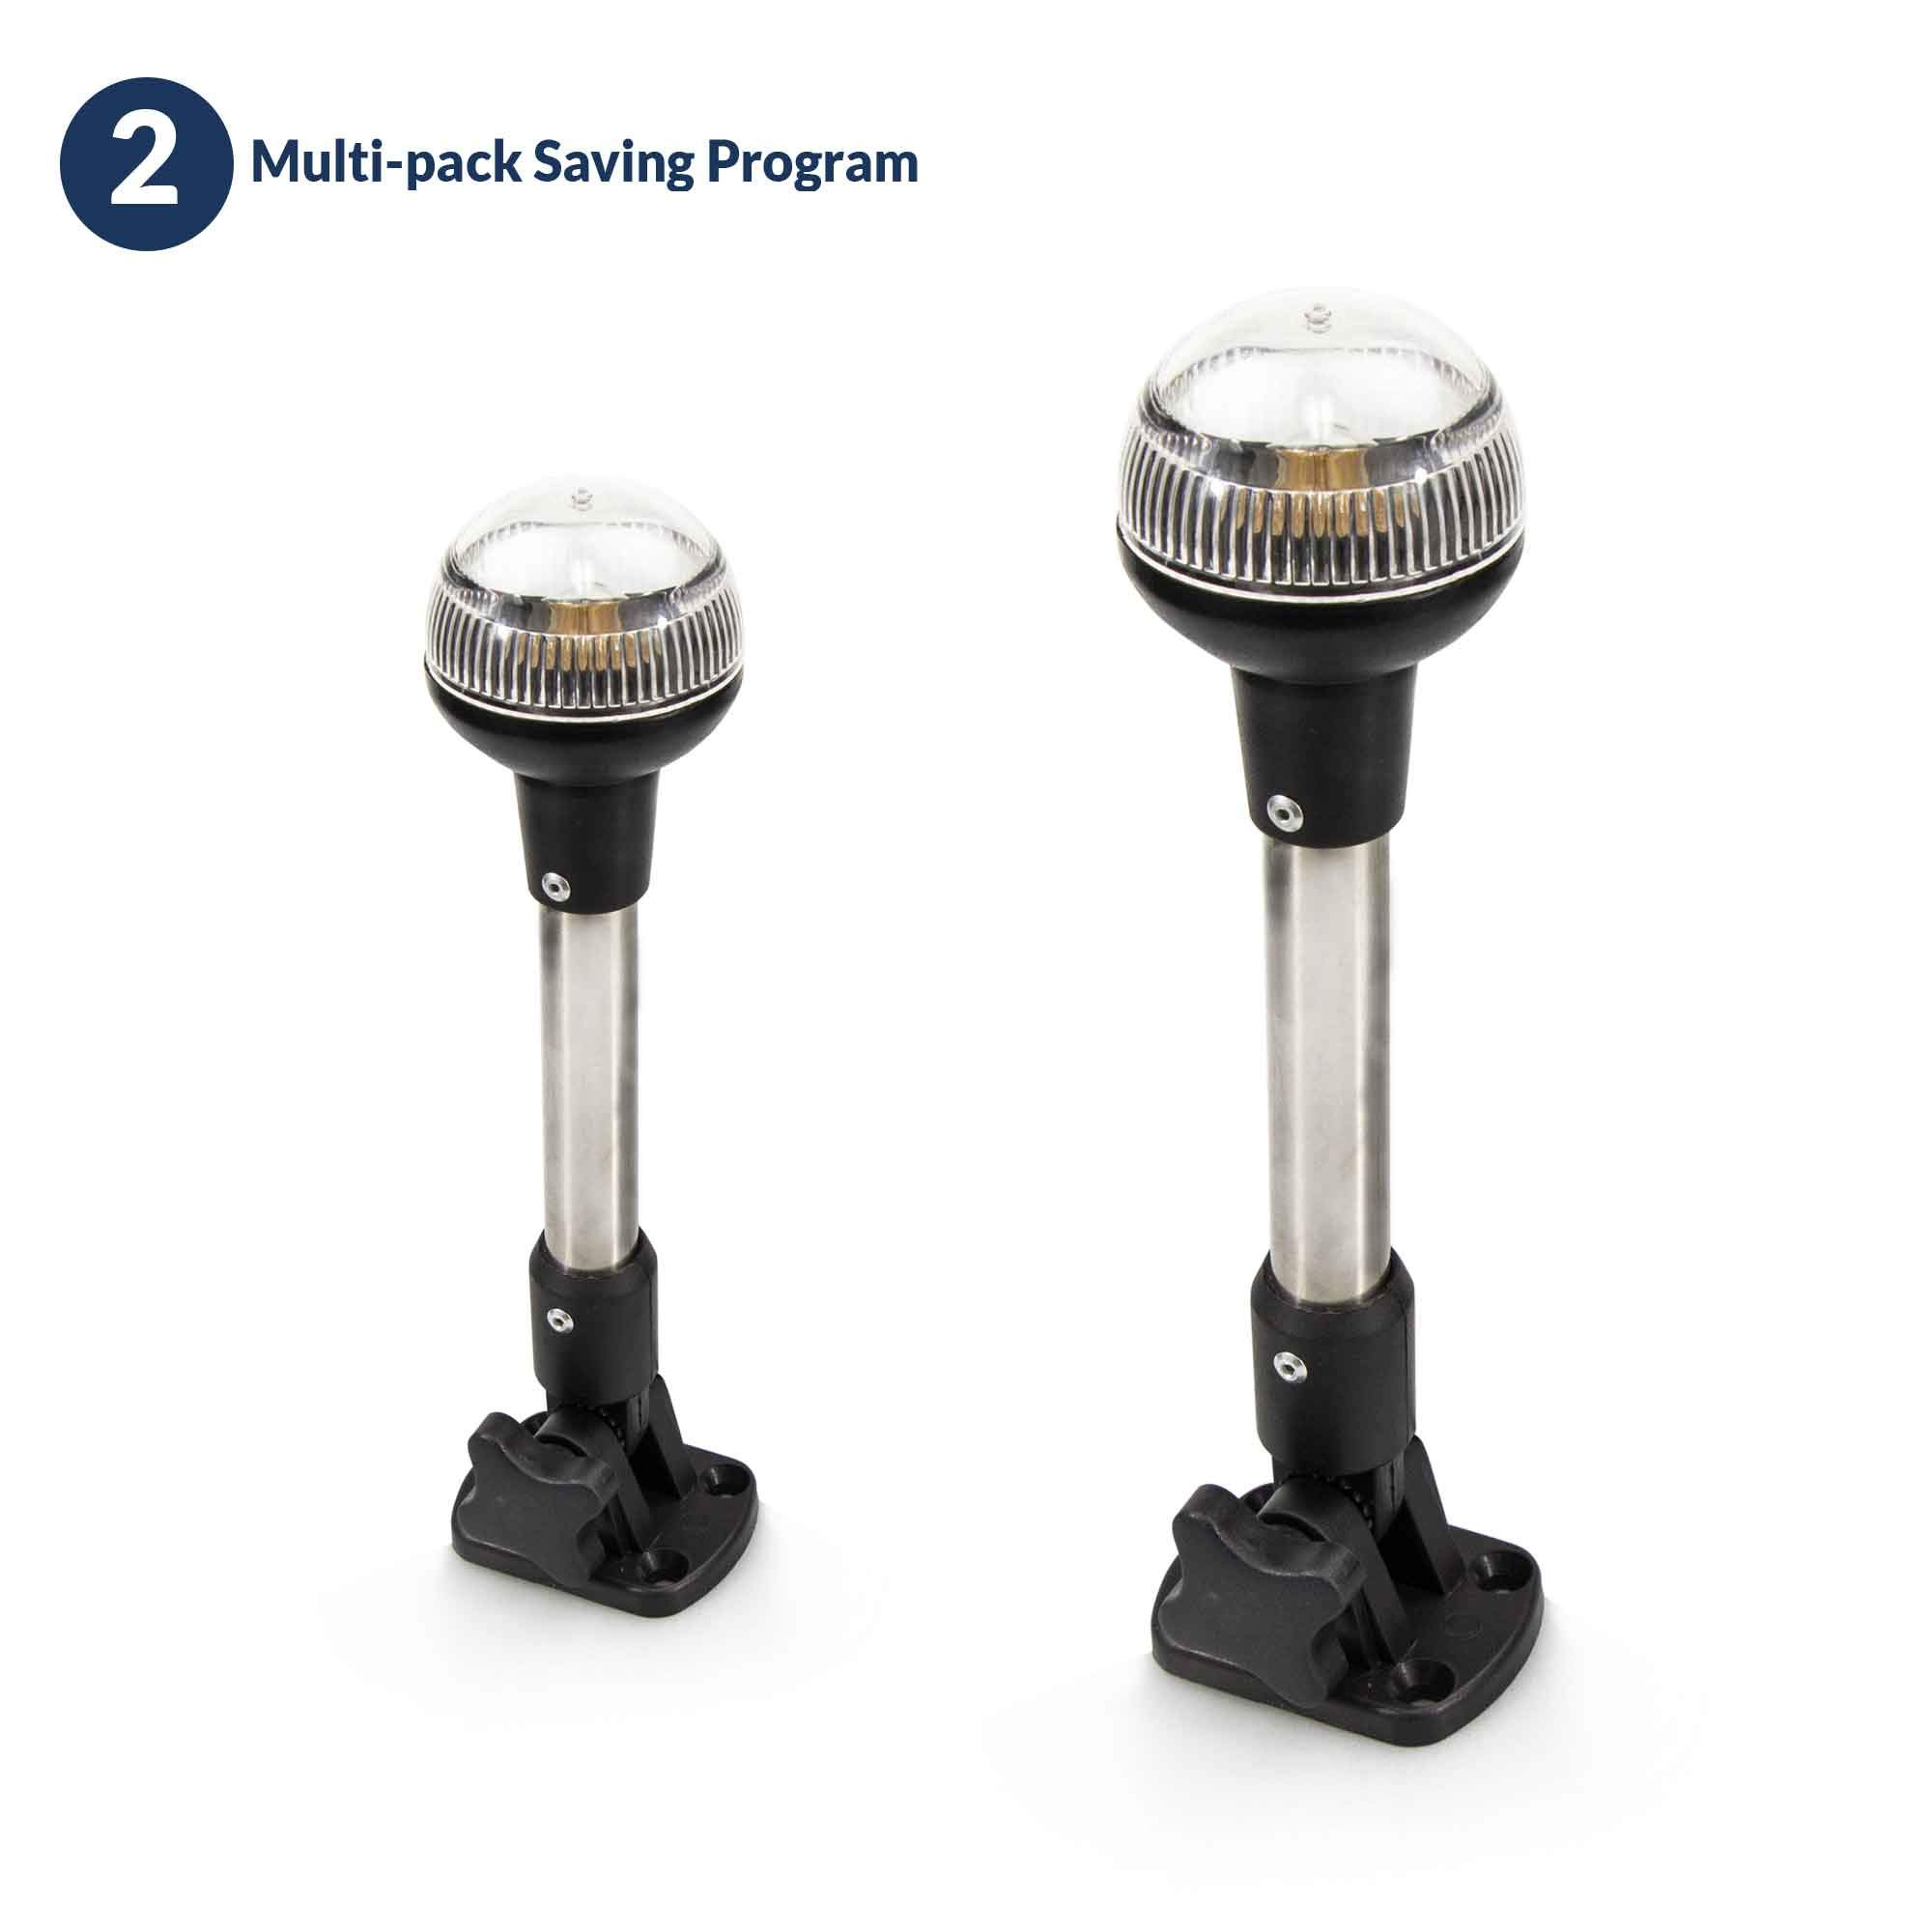 Five Oceans Marine All Round Anchor Light Fold Down, 9-1/2 inches (Pair) FO-2091-M2